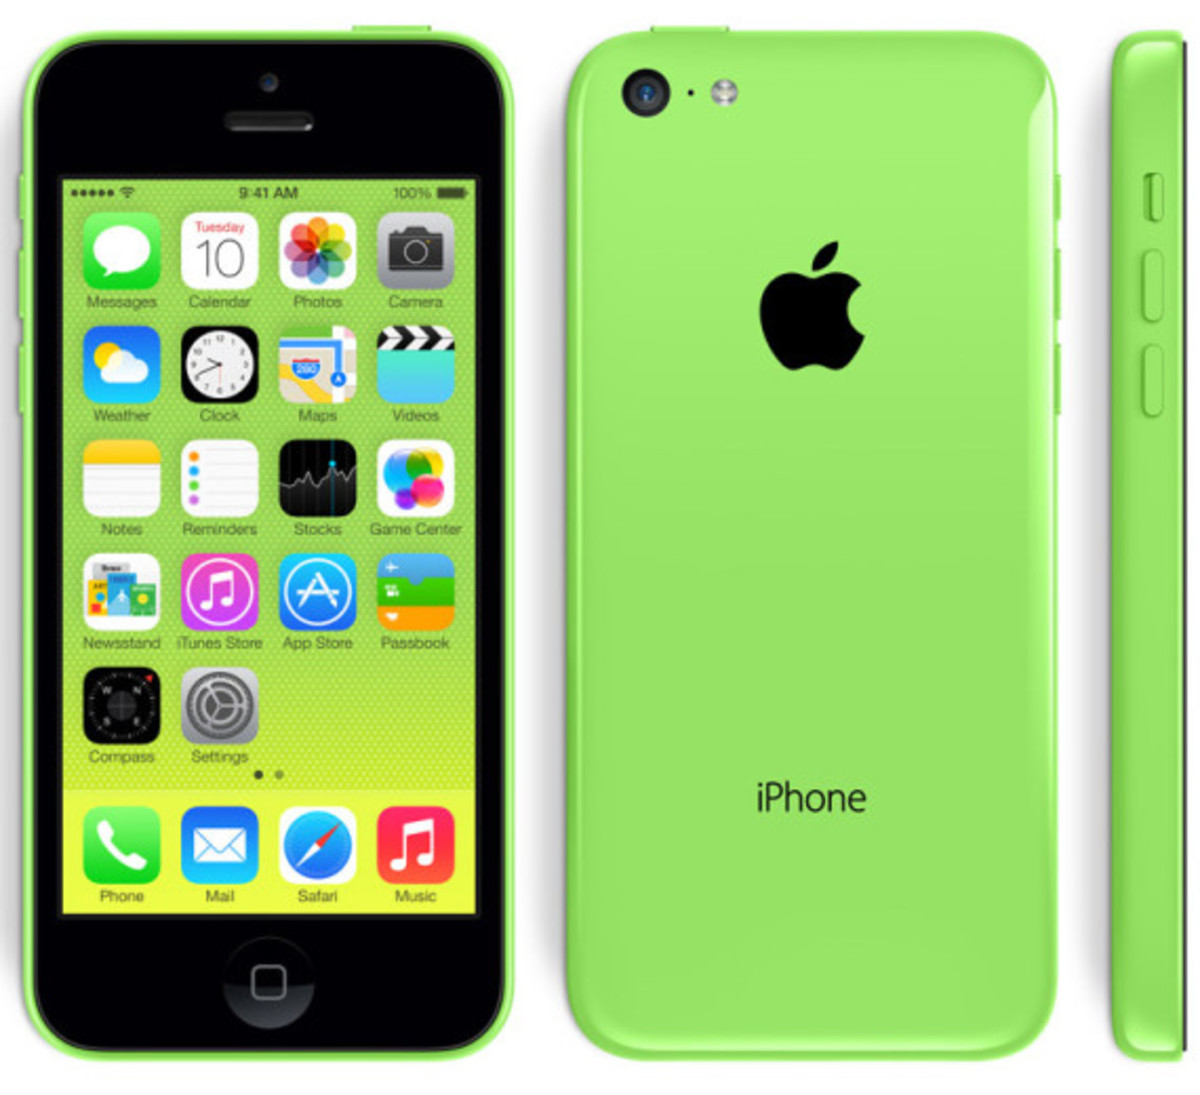 Apple iPhone 5C - Officially Unveiled - 8